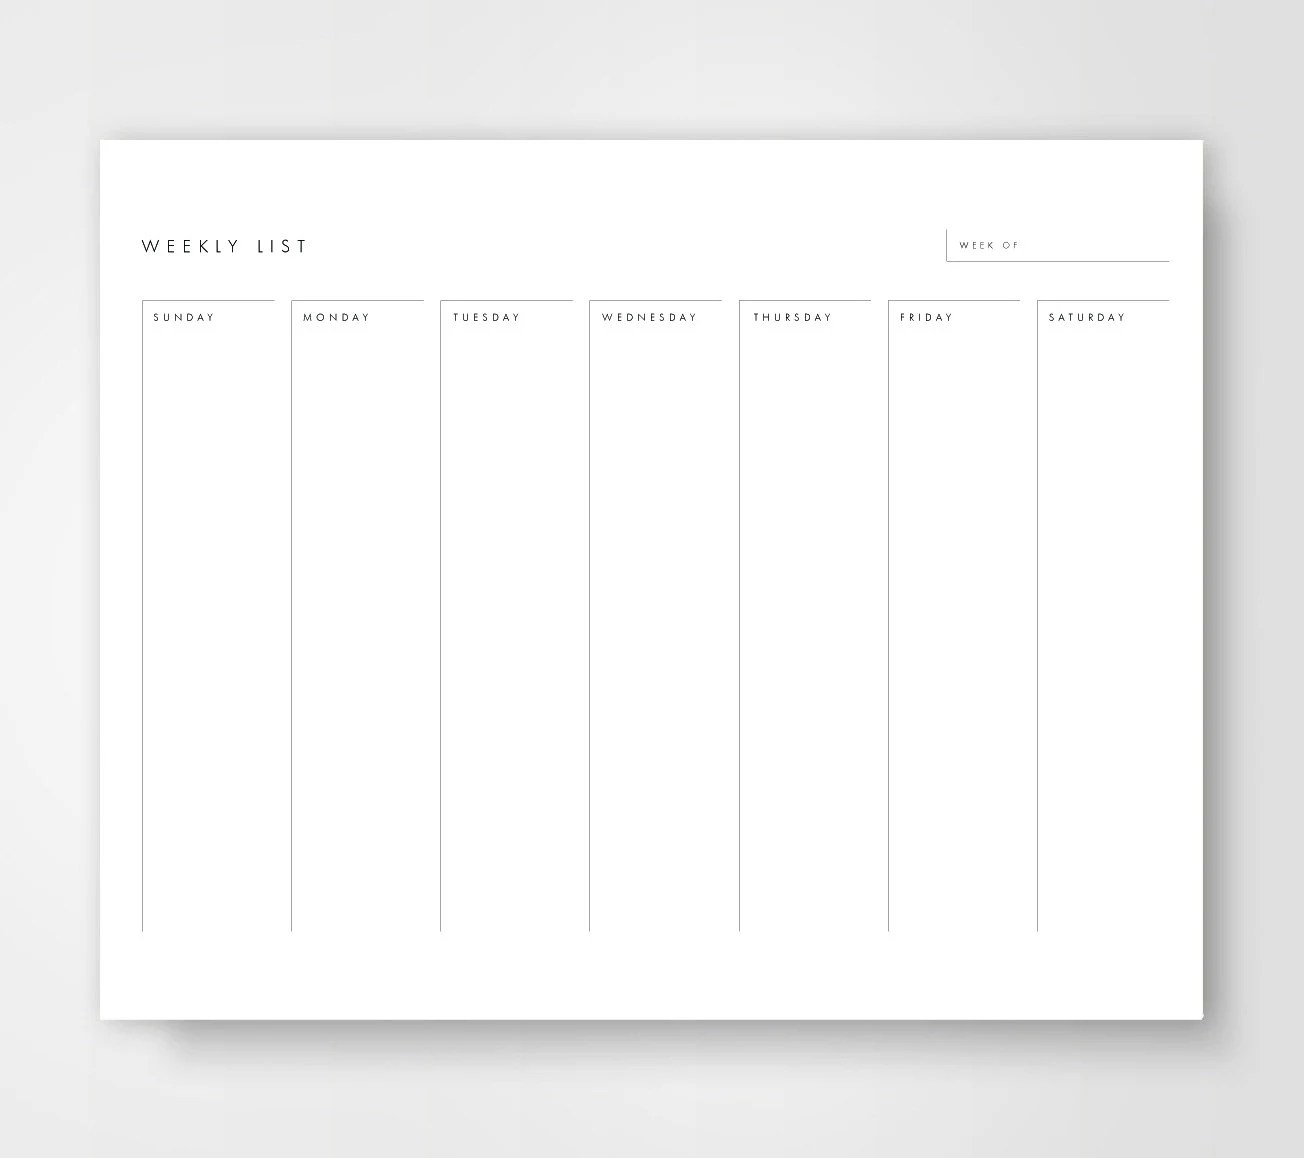 Design Your Own Calendar Reviews Queen Of Your Own Life 2016 Boxeddaily Calendar By Cindy Weekly Calendar Printable Weekly To Do List Weekly To Do